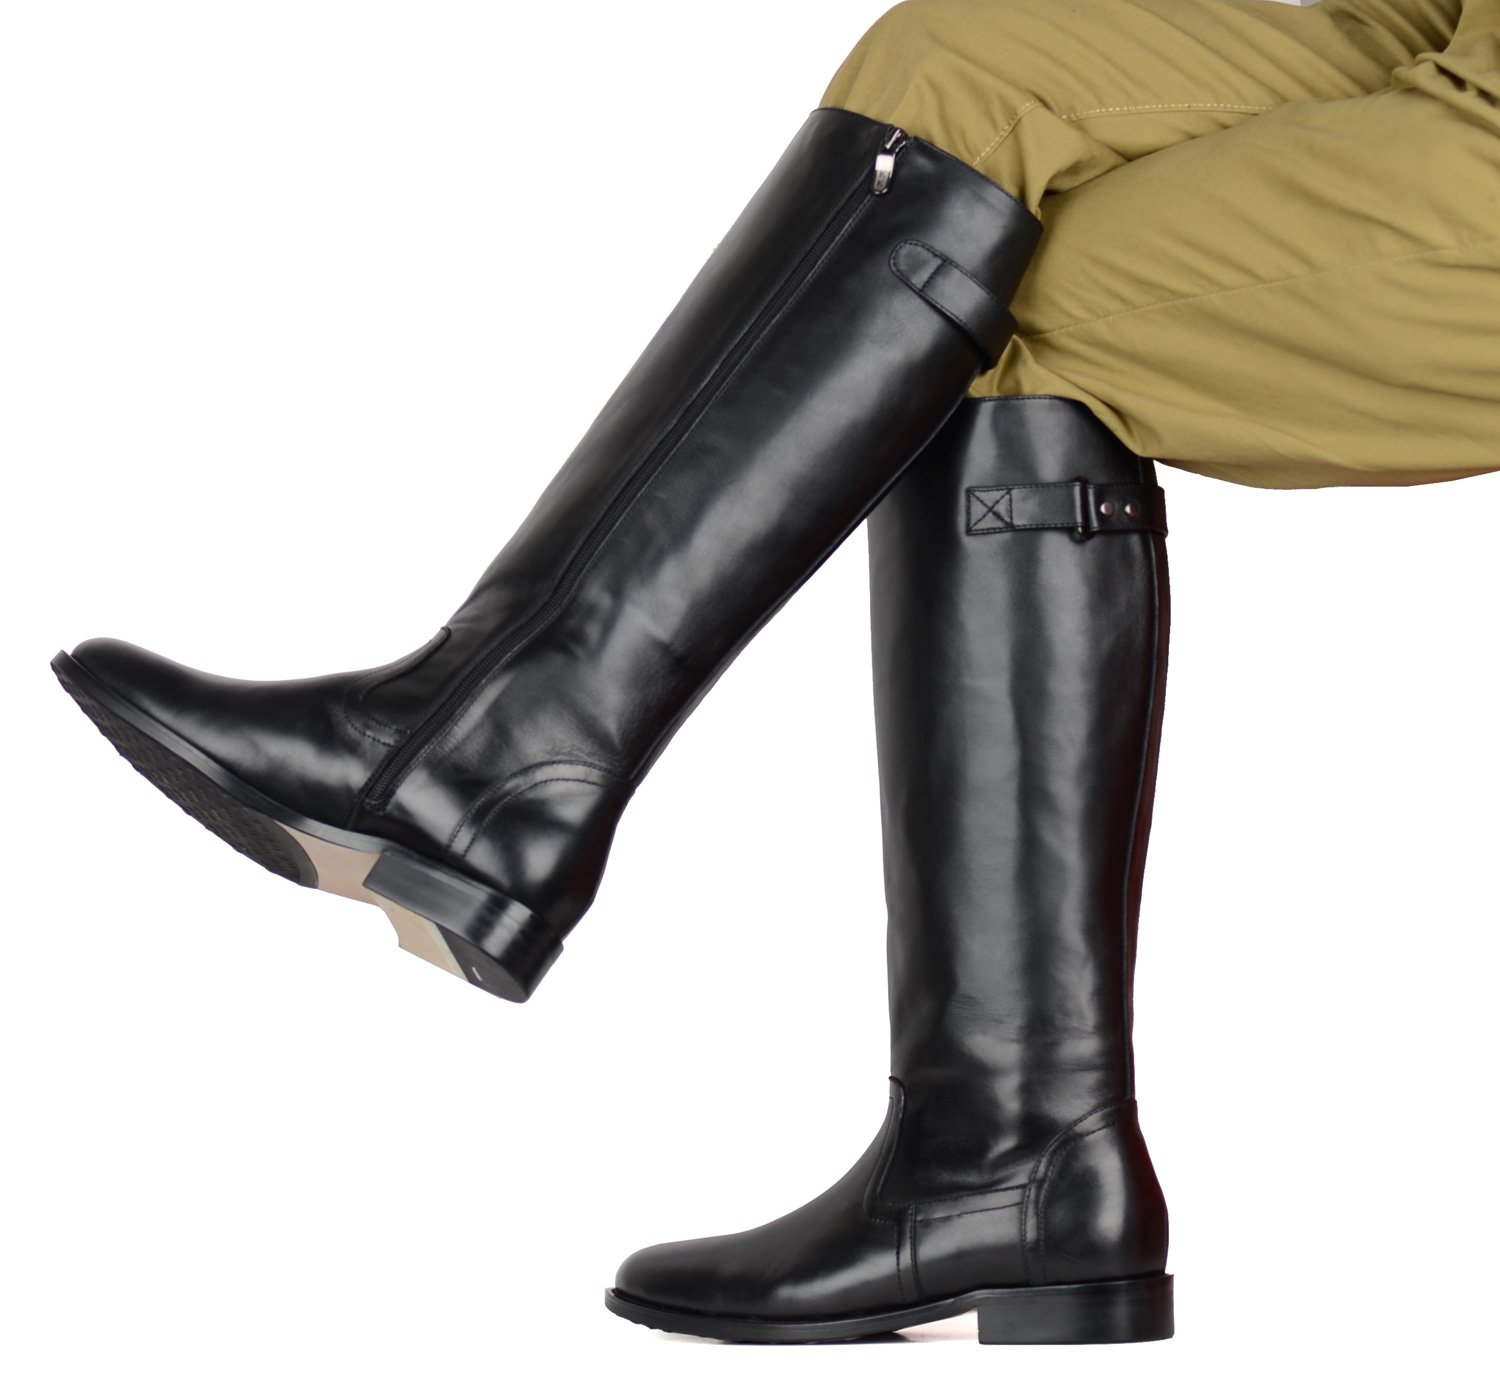 Amazon.com : GRB German Boots Leather Men's Black Jack Riding Boot ...